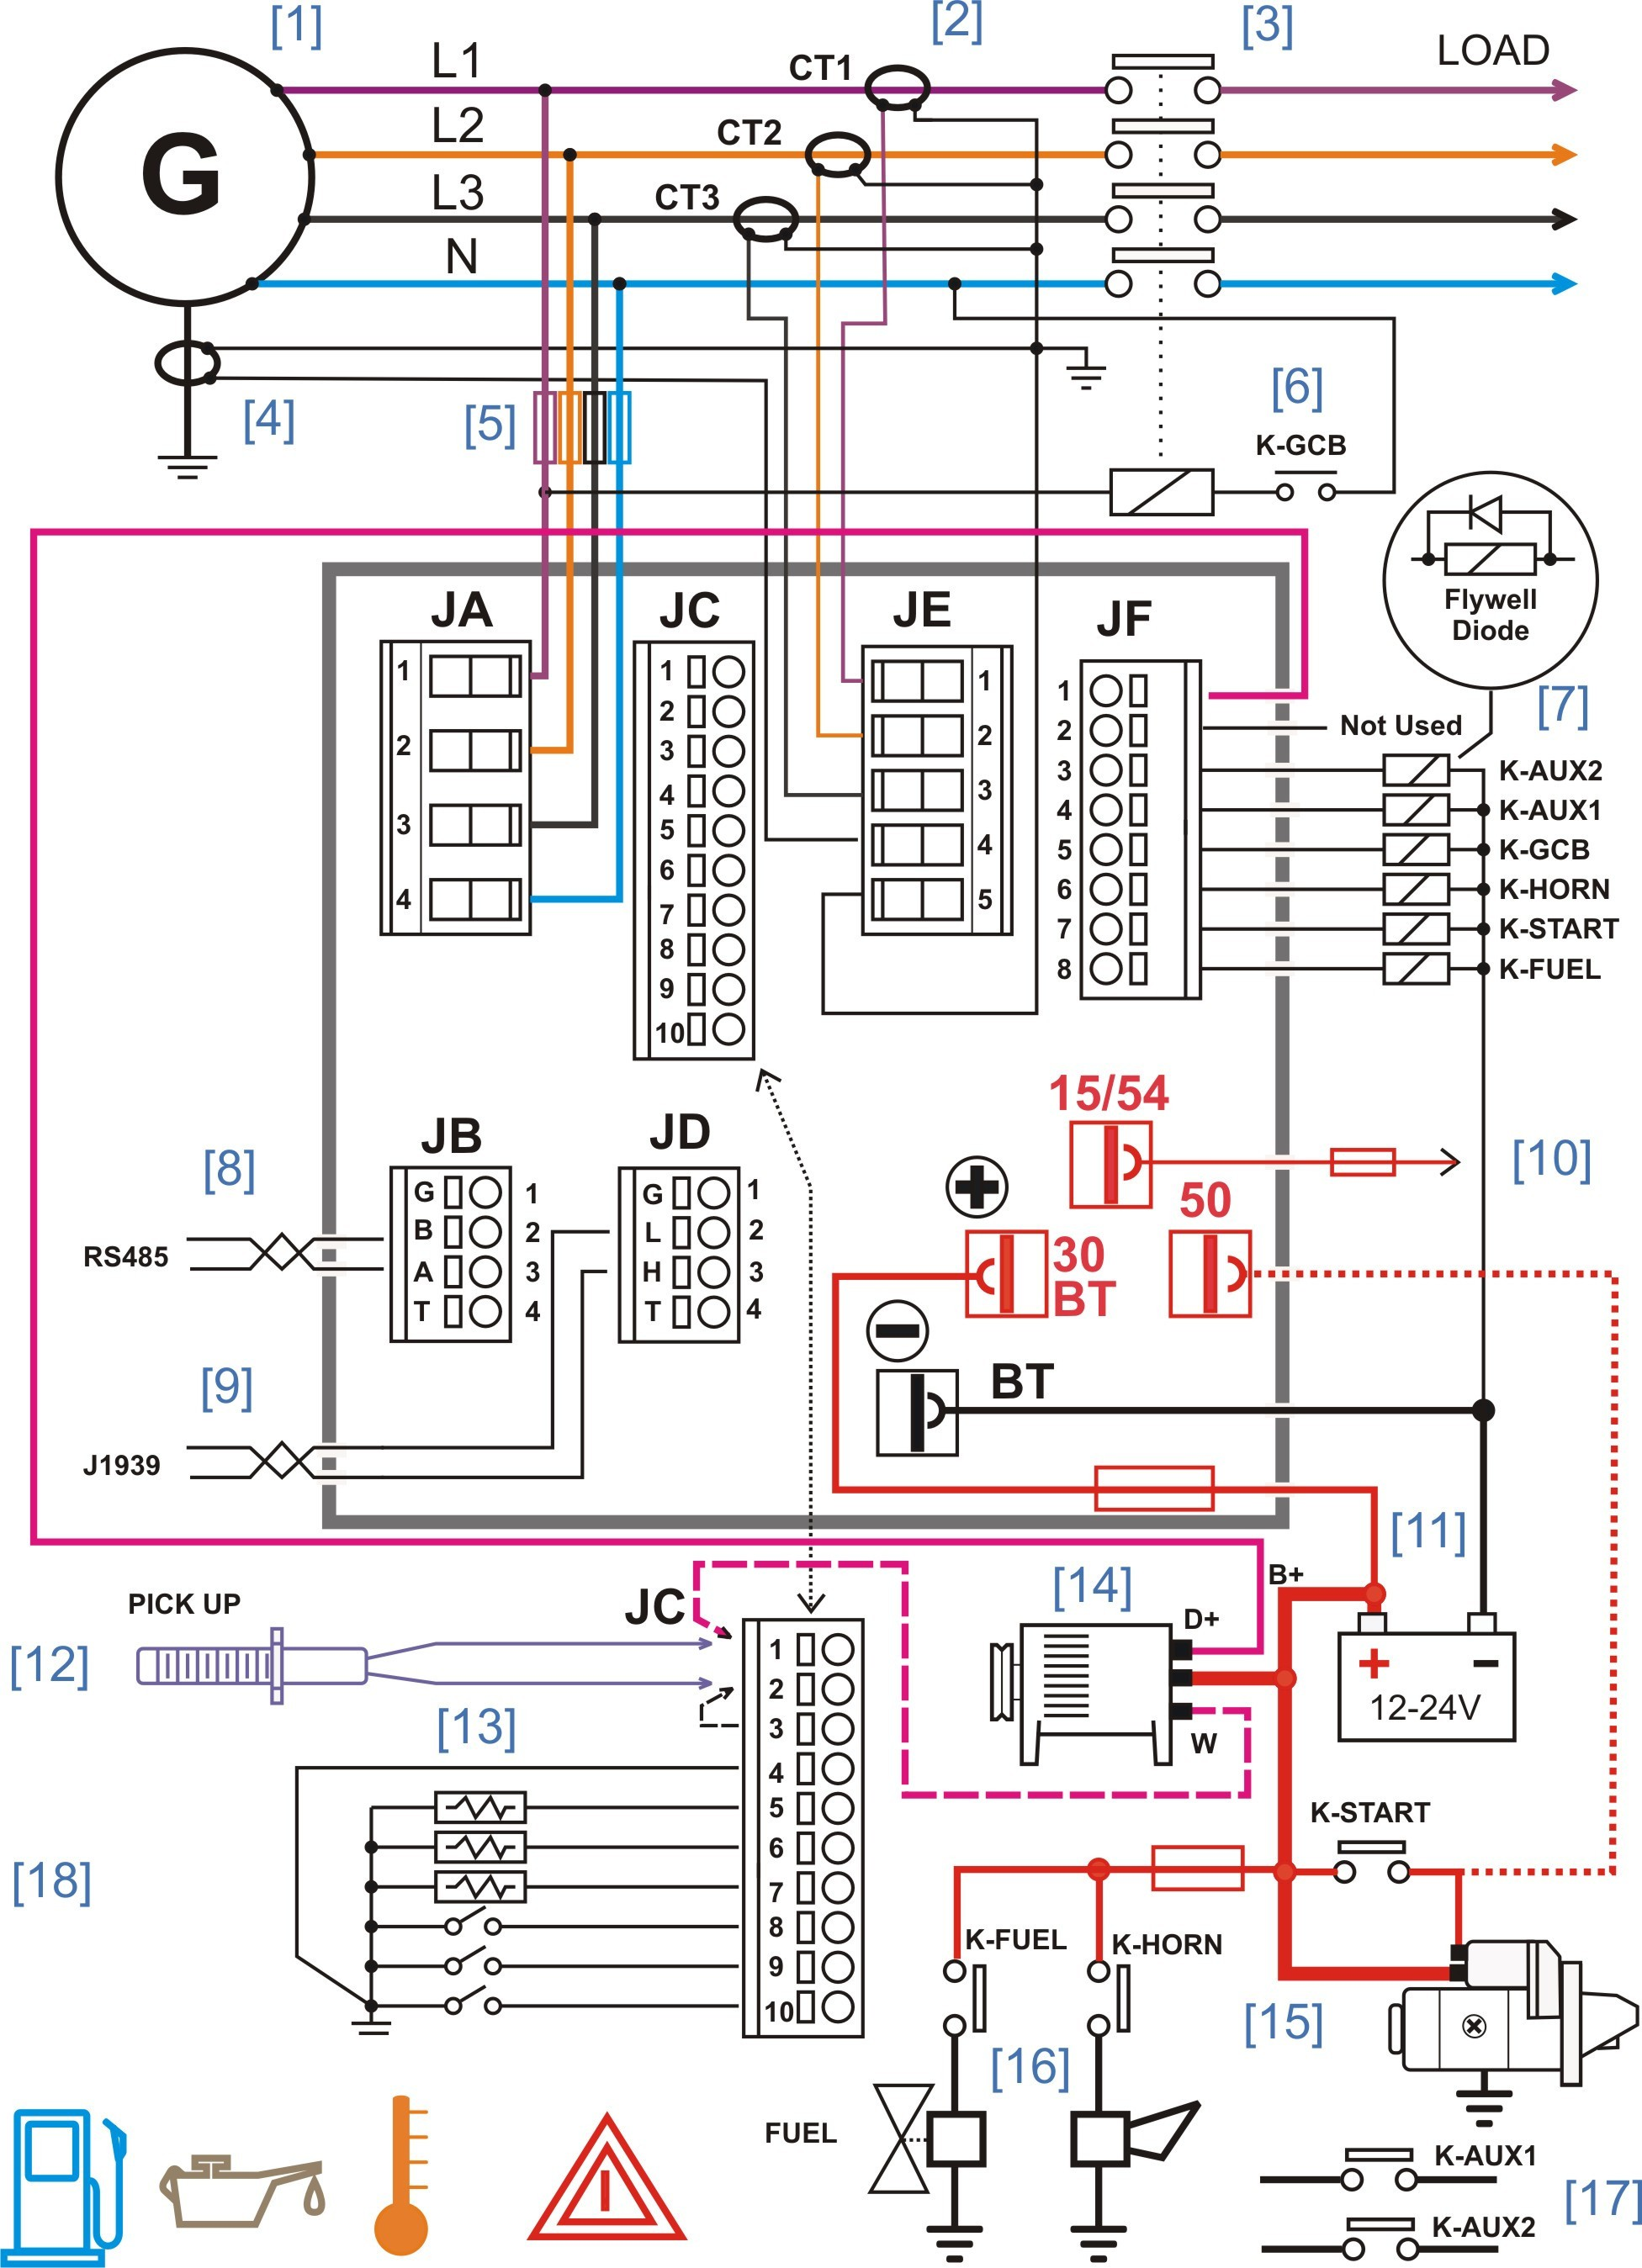 Home Generator Wiring Diagram Wiring Diagram Residential Diagrams and Schematics Home Inside Of Home Generator Wiring Diagram